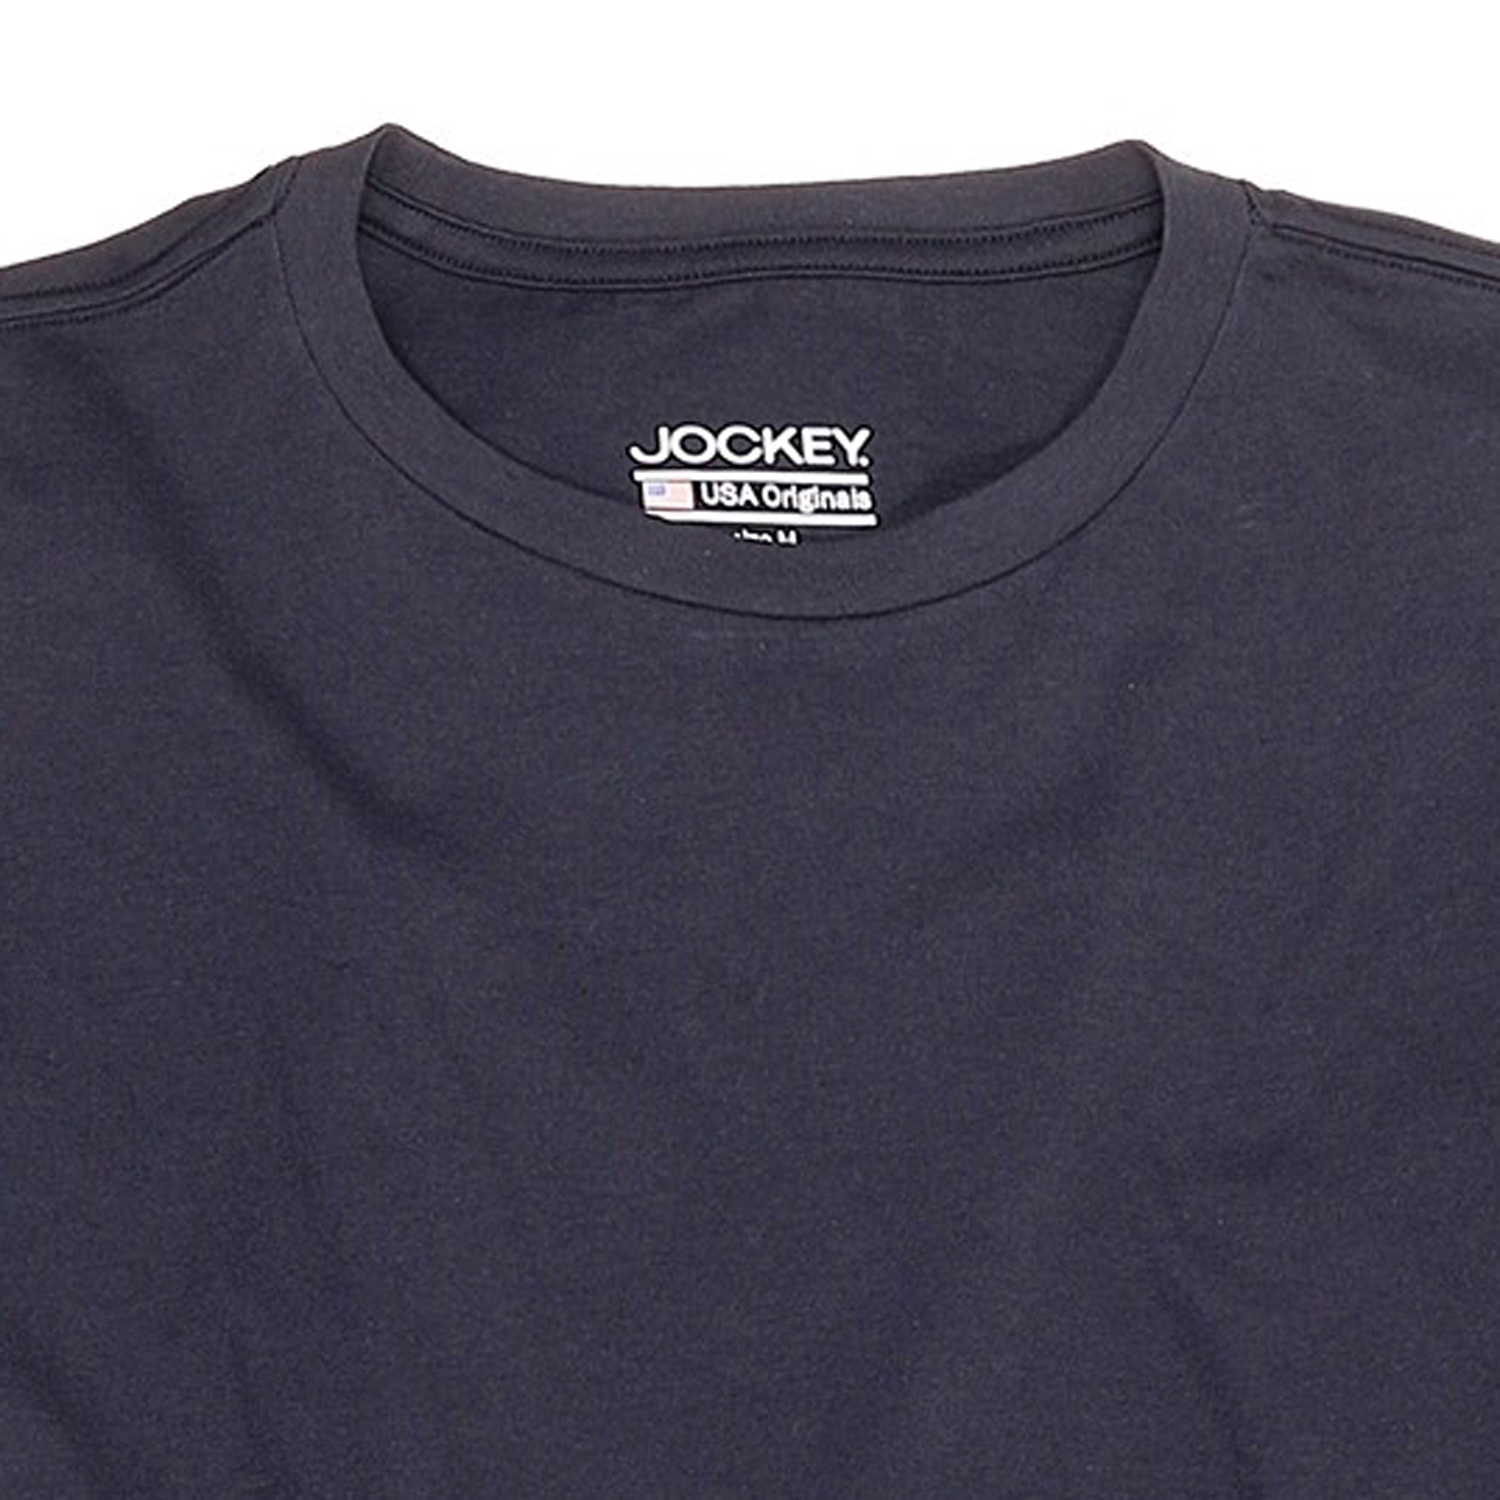 Detail Image to Long Sleeve from Jockey blue, in oversize until 6XL